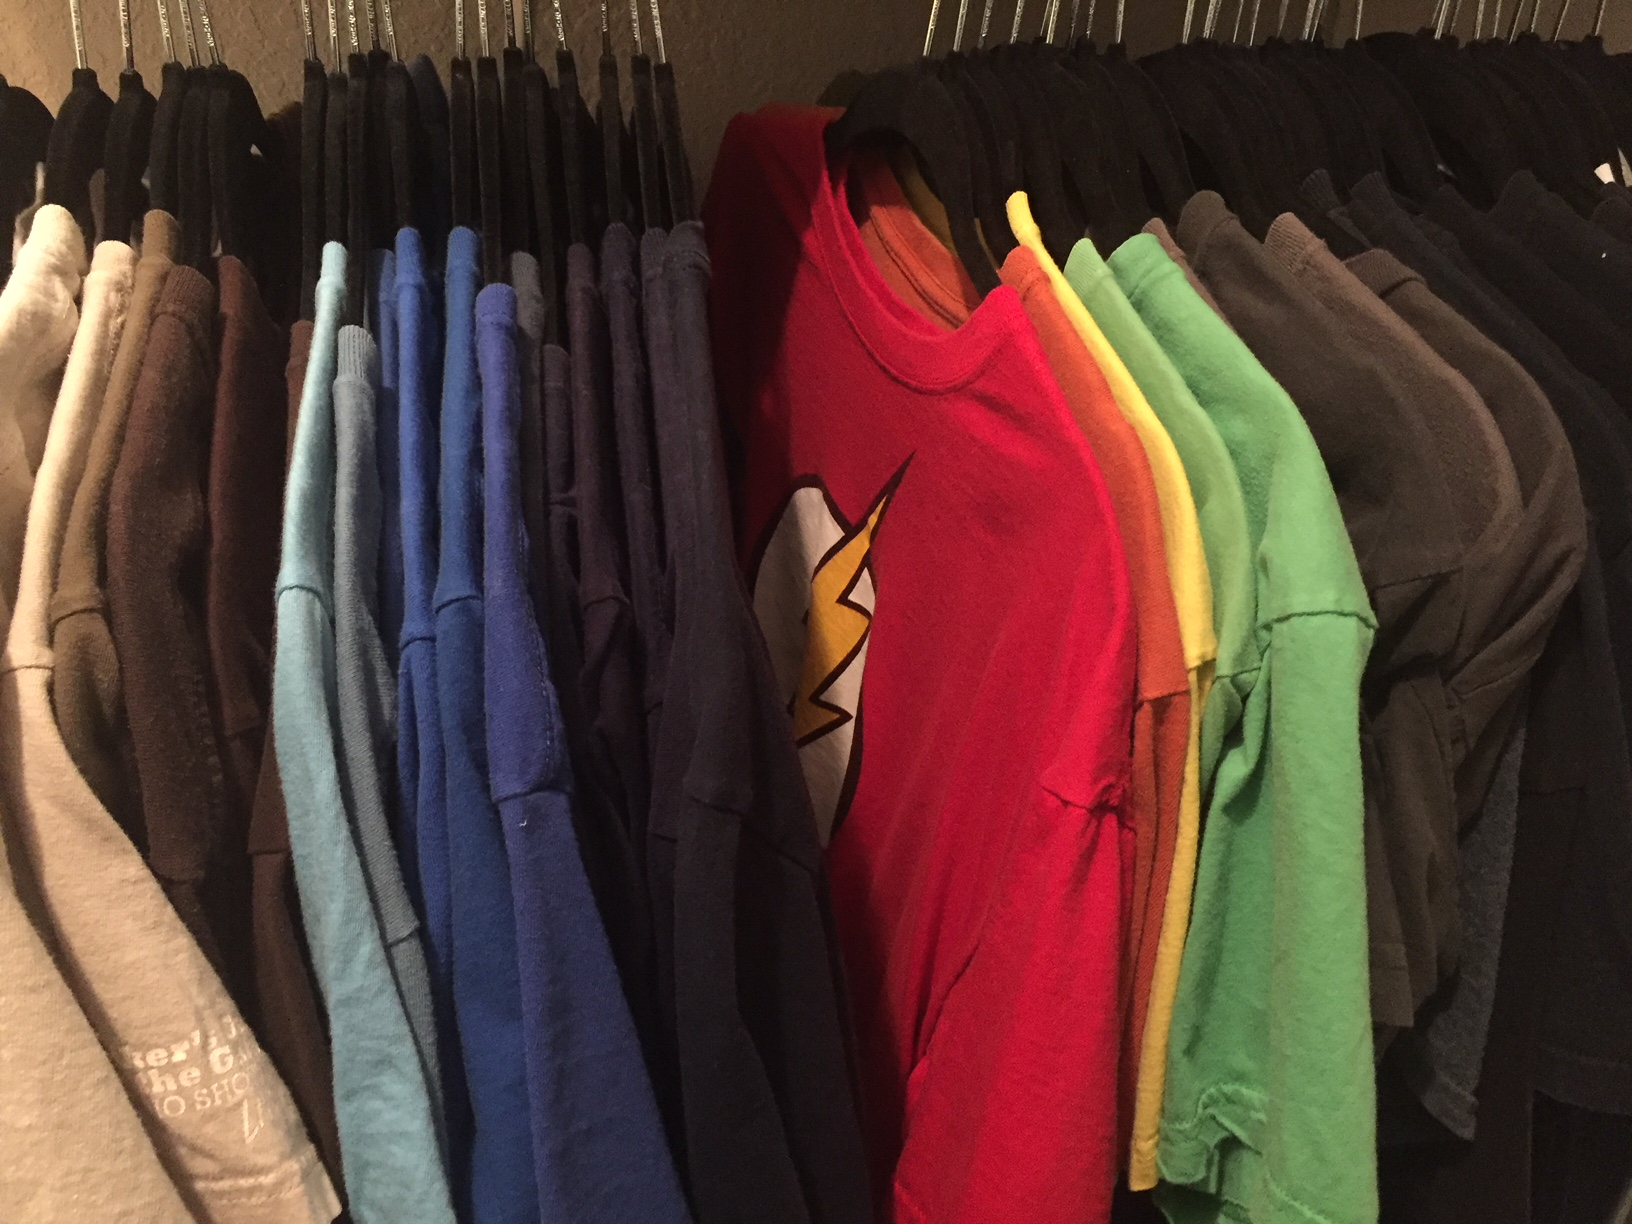 My shirts, resting in their natural habitat.